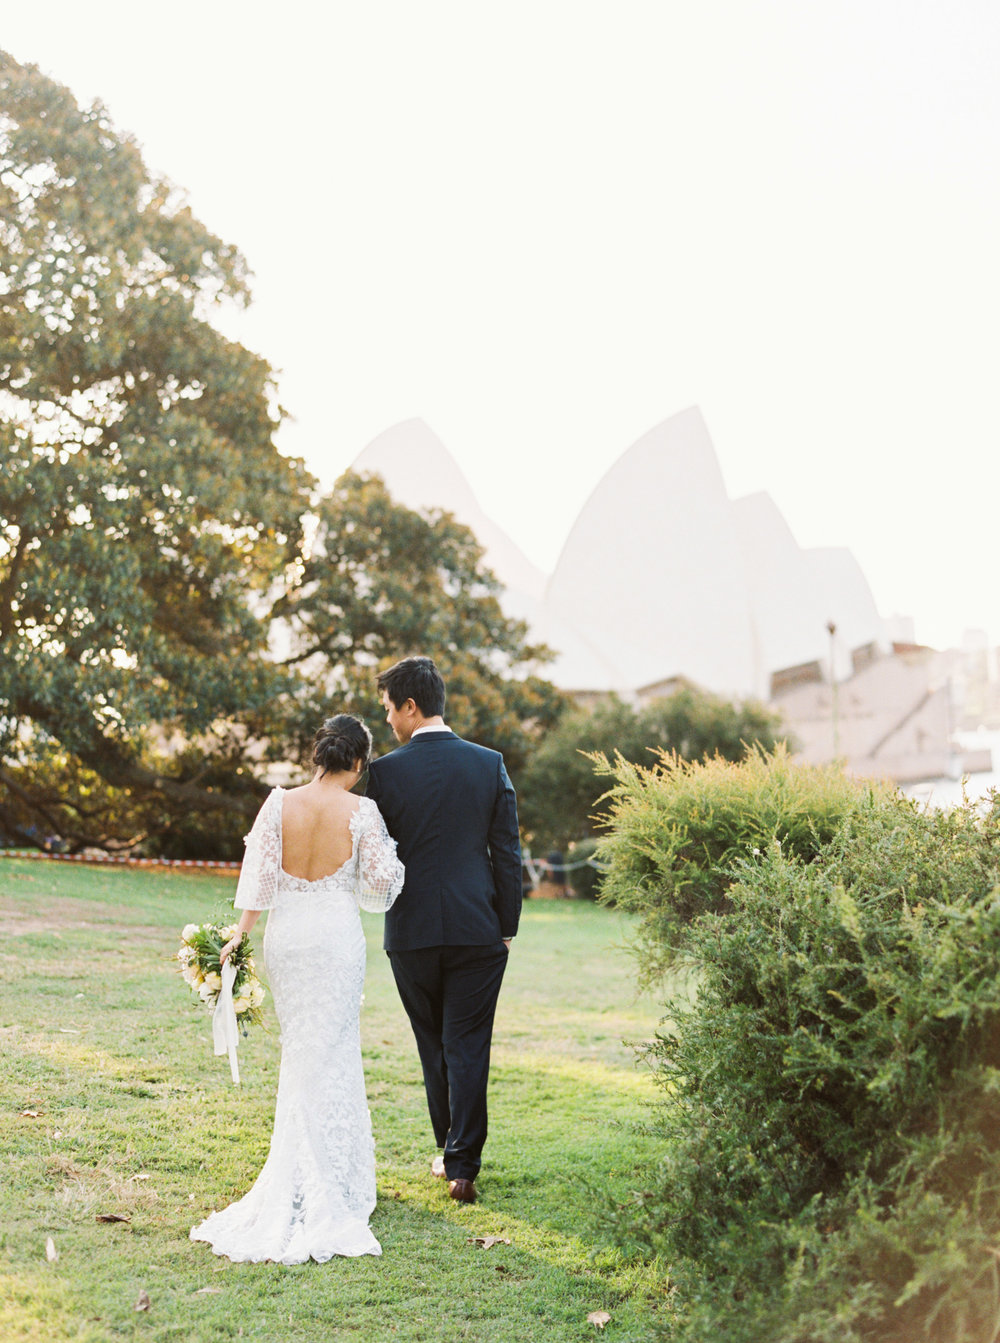 00015- Fine Art Film Australia Destination Sydney Wedding Photographer Sheri McMahon.jpg